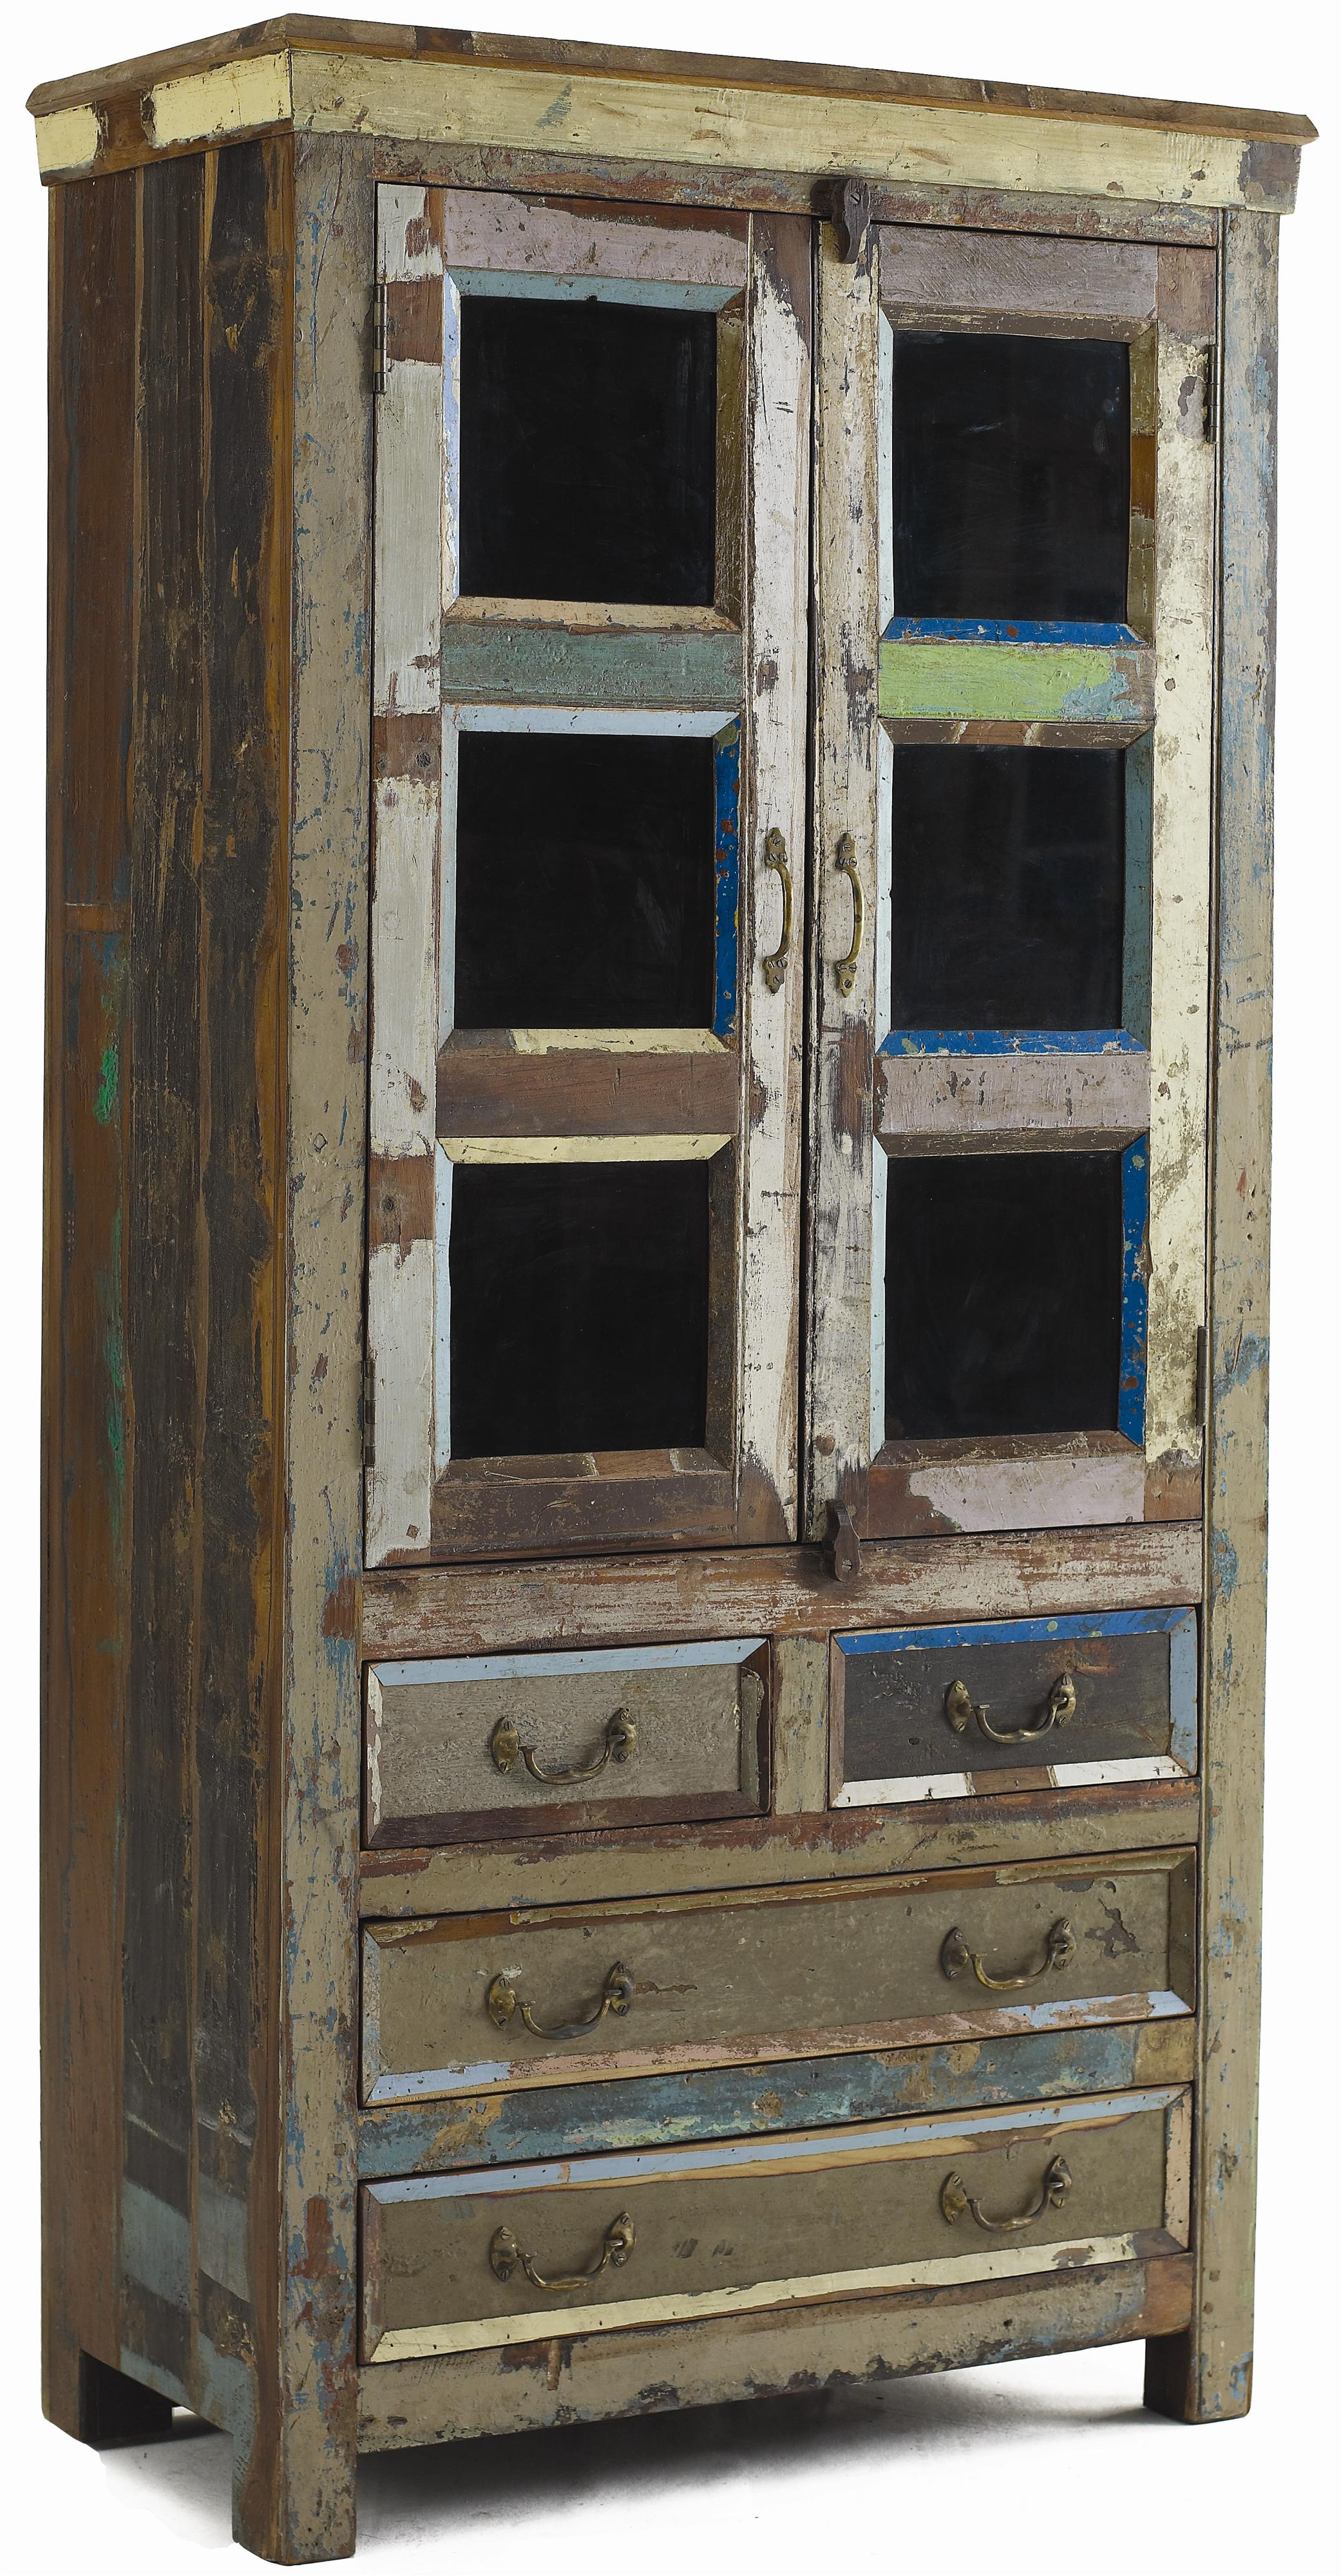 classic home furniture reclaimed wood. Classic Home Vintage Reclaimed Wood Multi-Color Glass Panel Cabinet Furniture E